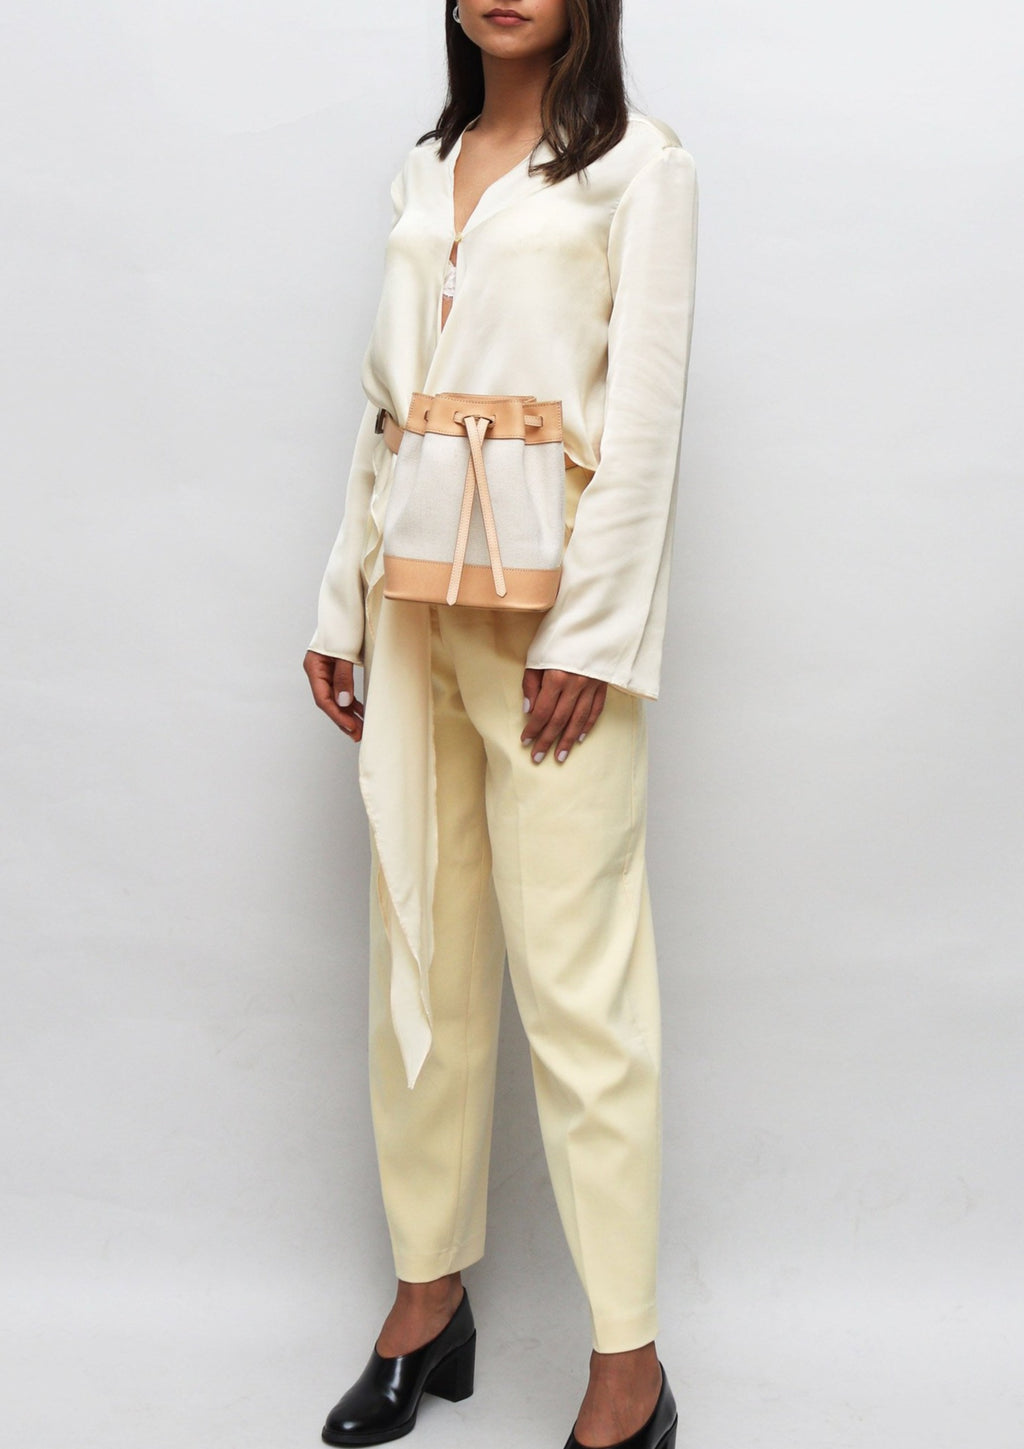 Tan Leather and Cream Bucket  Belt Bag